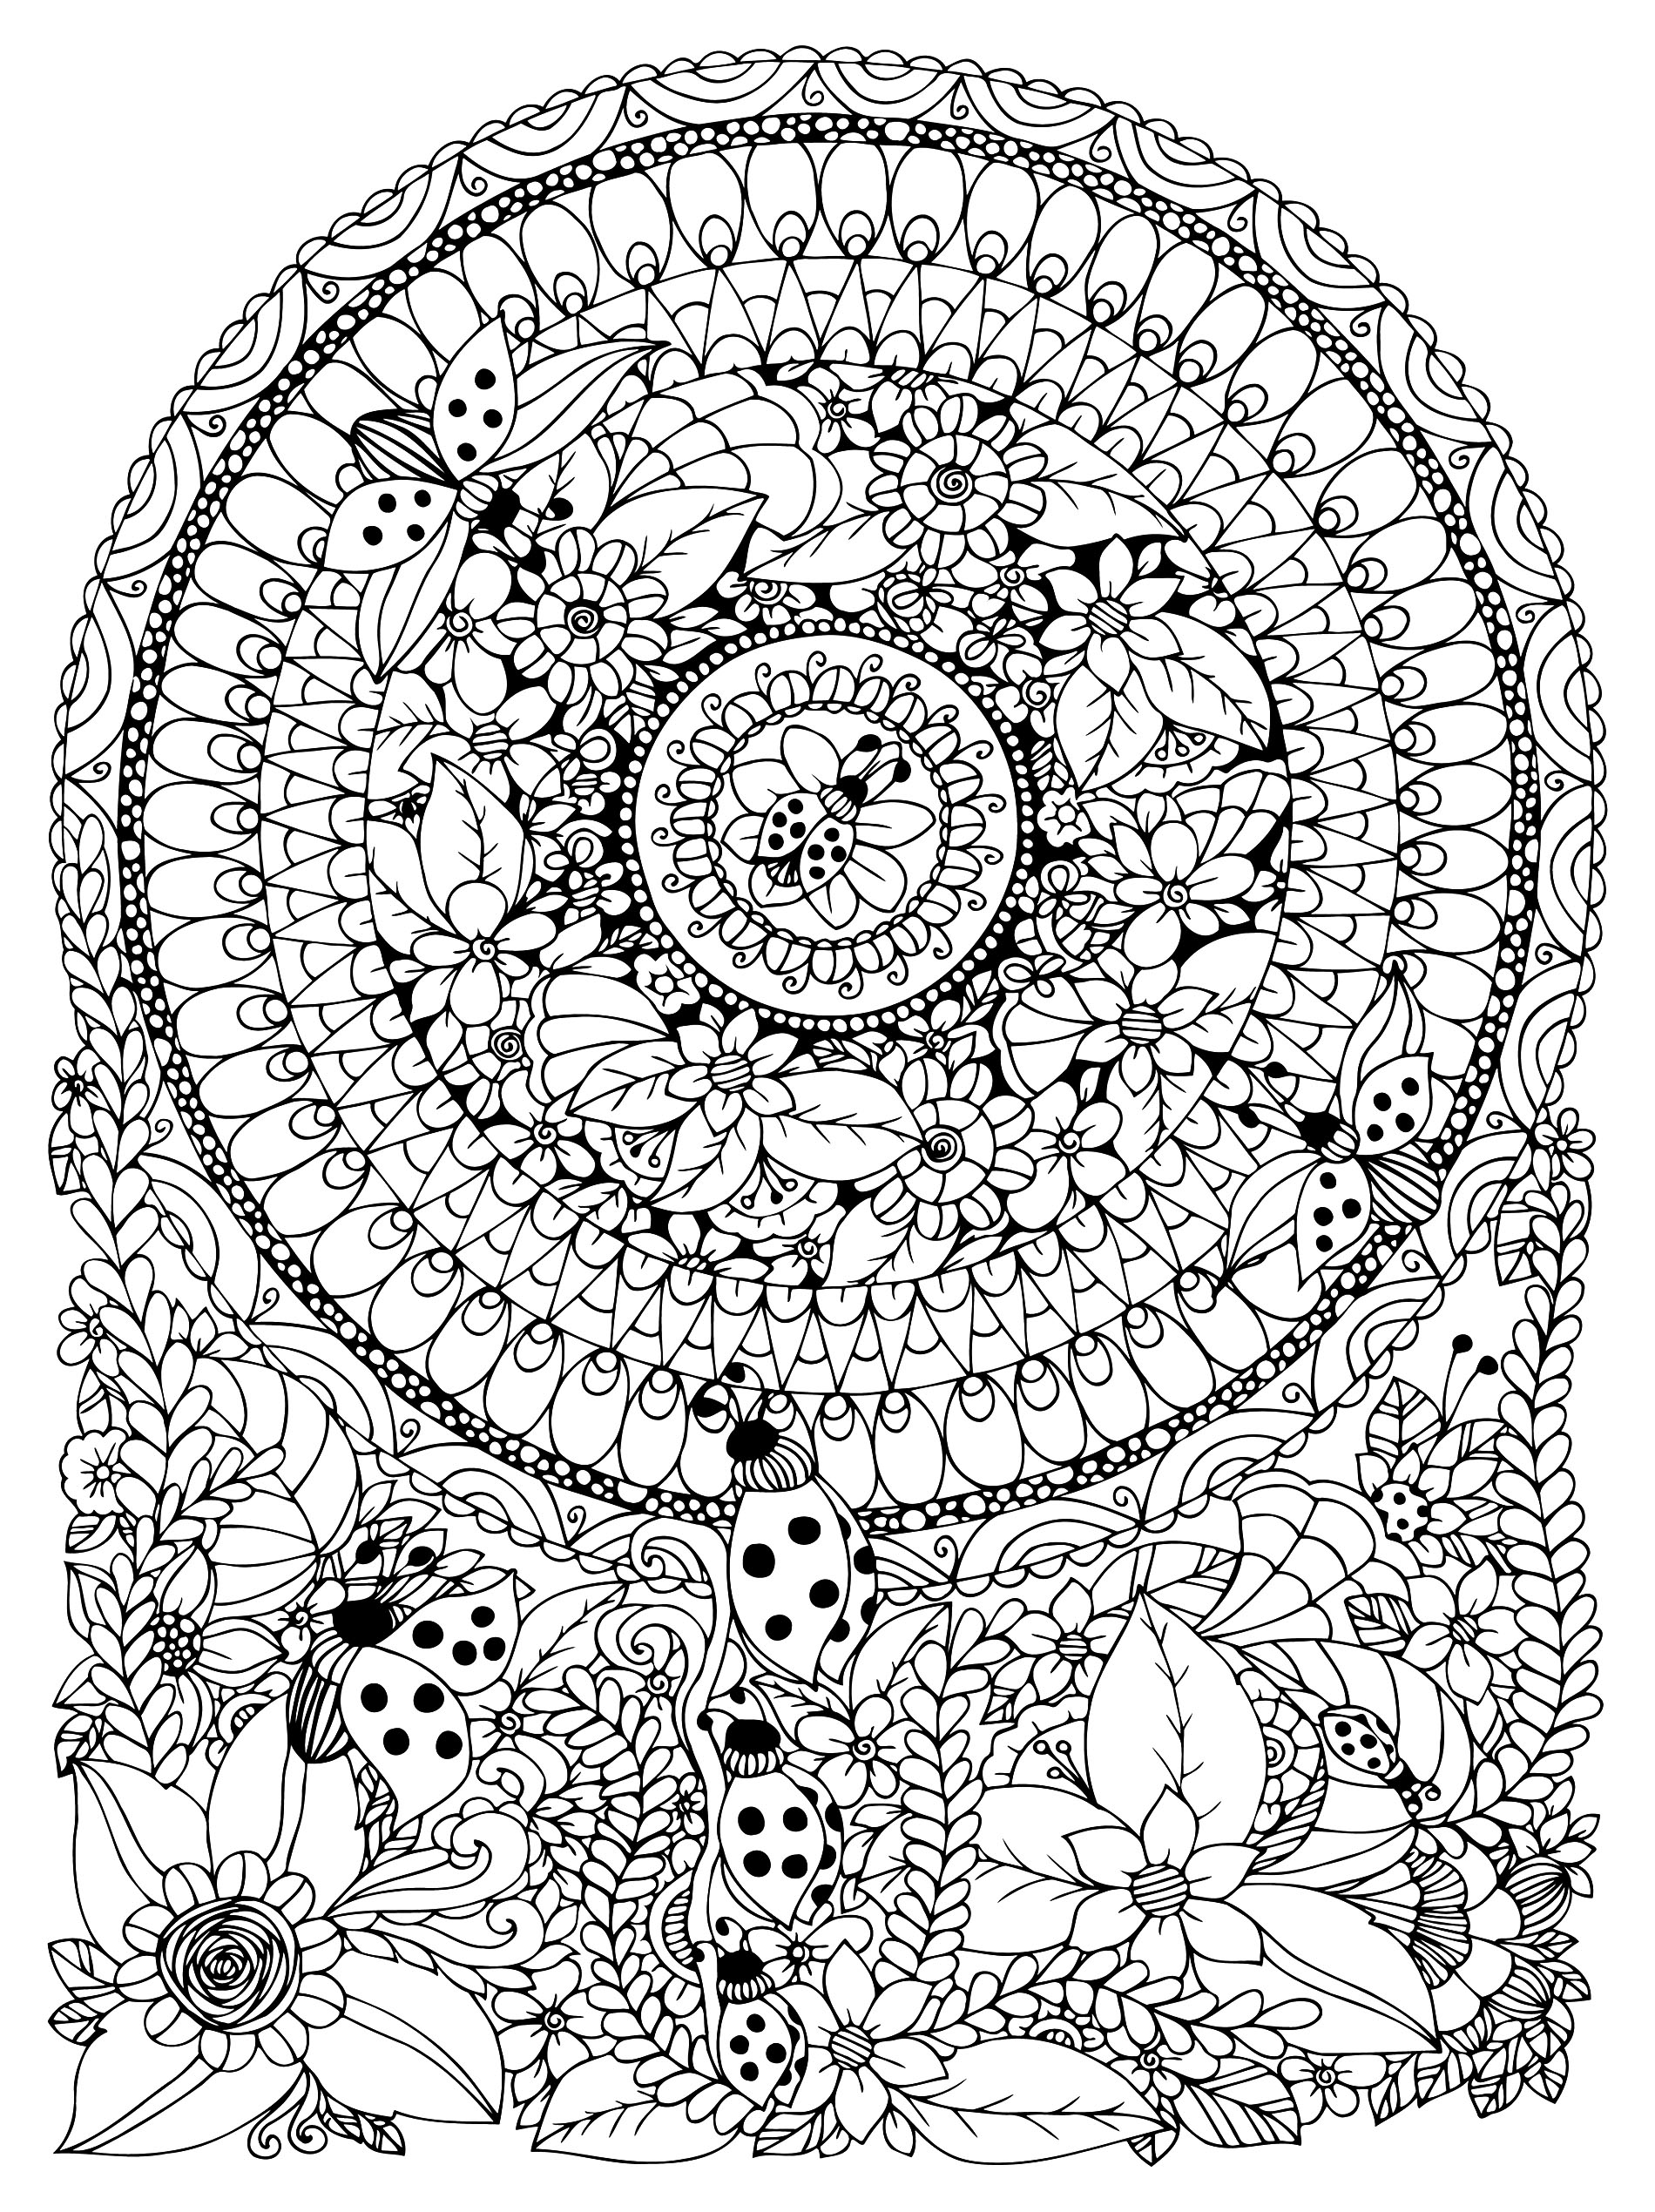 Vector illustration Zen Tangle ladybug in a flower. Manali, doodle, circle. Coloring book anti stress for adults. Black and white.,Vector illustration Zen Tangle ladybug in a flower. Manali, doodle, circle. Coloring book anti stress for adults. Black and white.